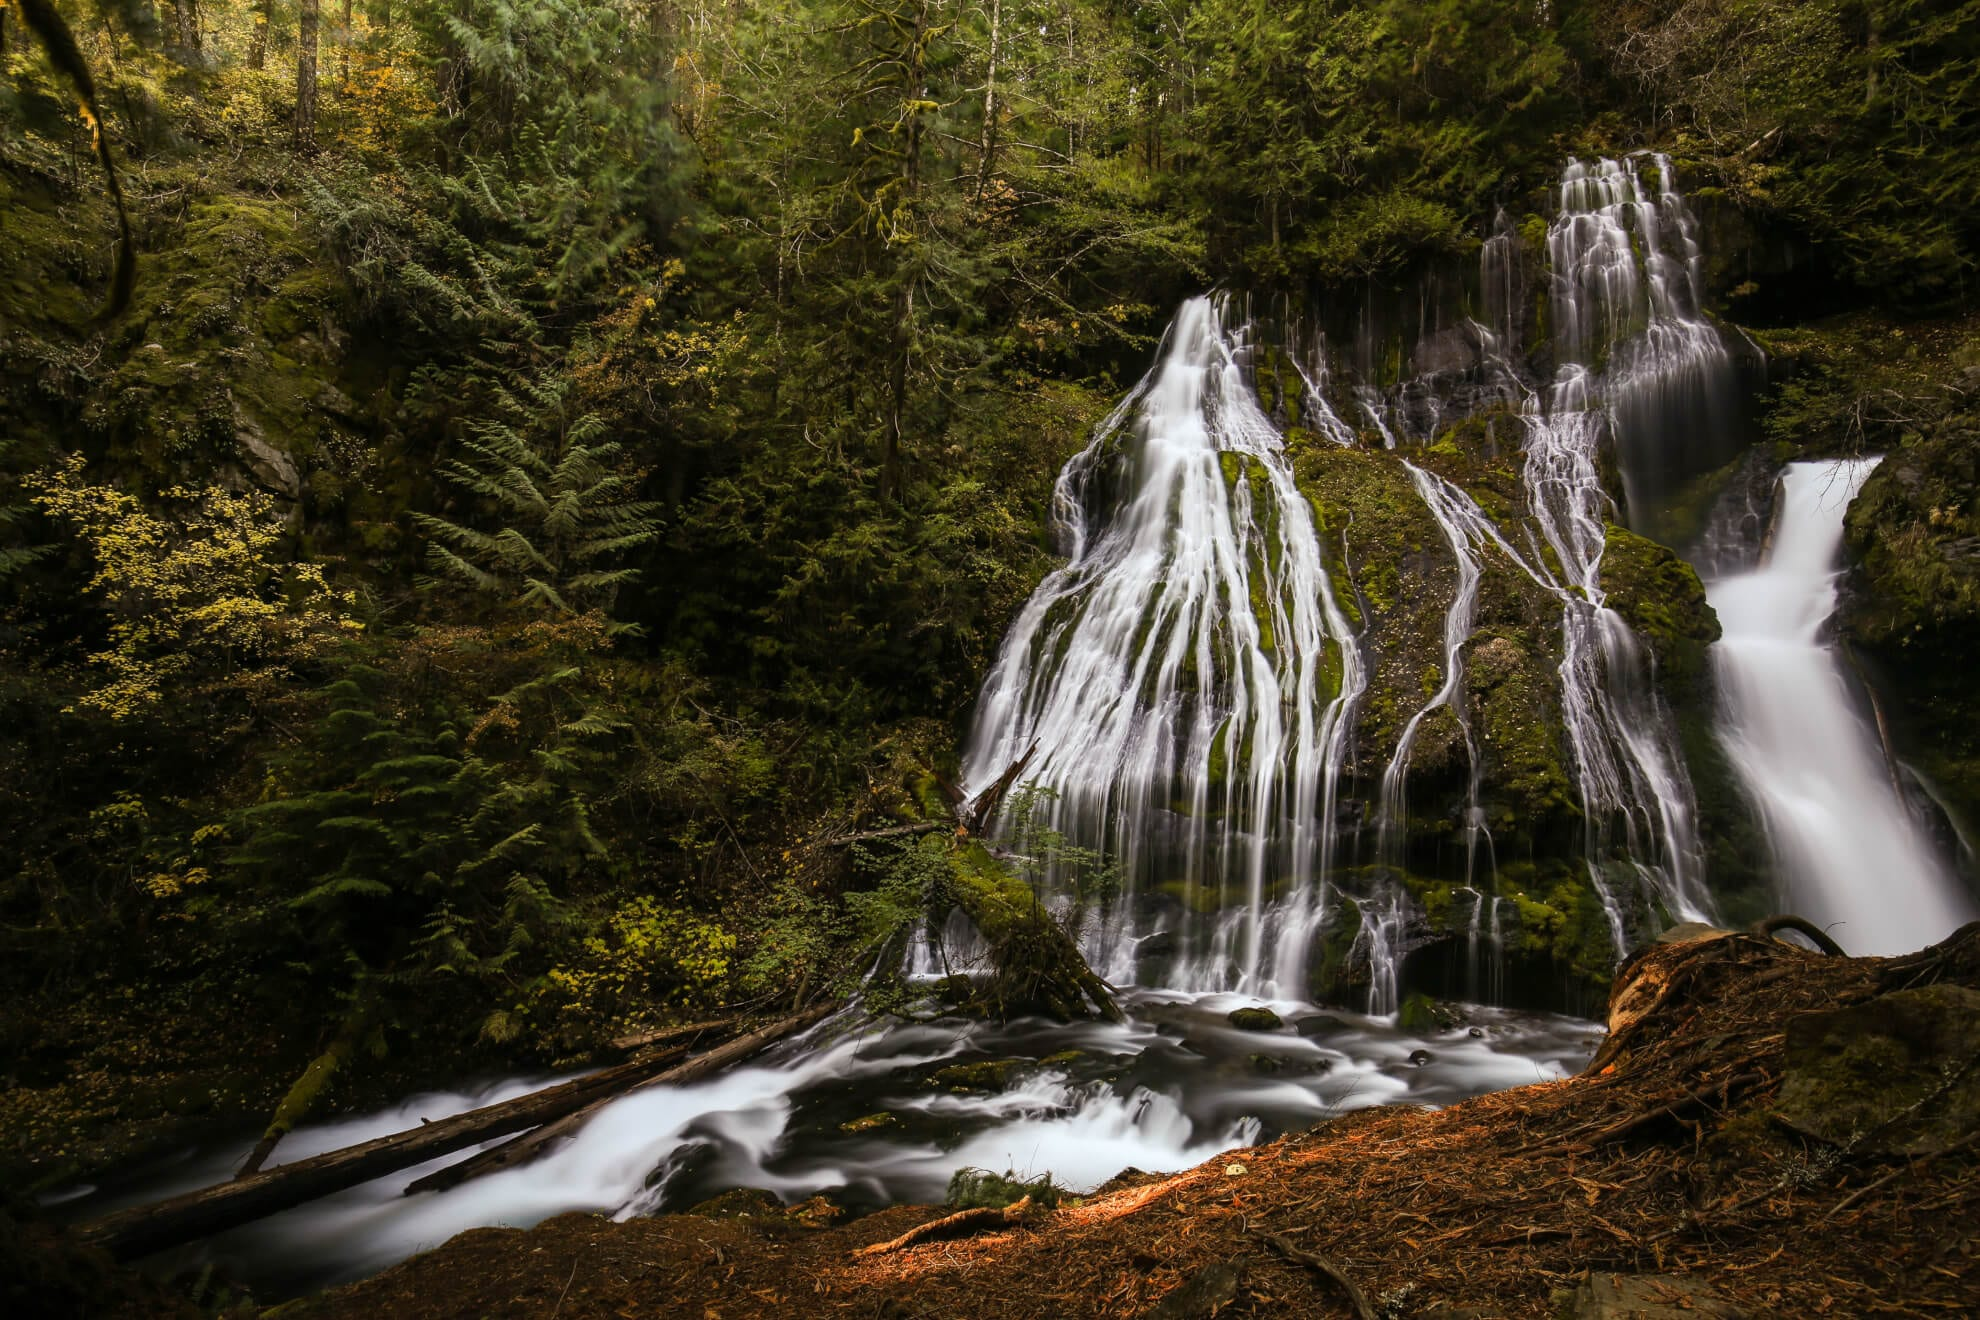 Waterfall in Old Growth Forest in Washington State